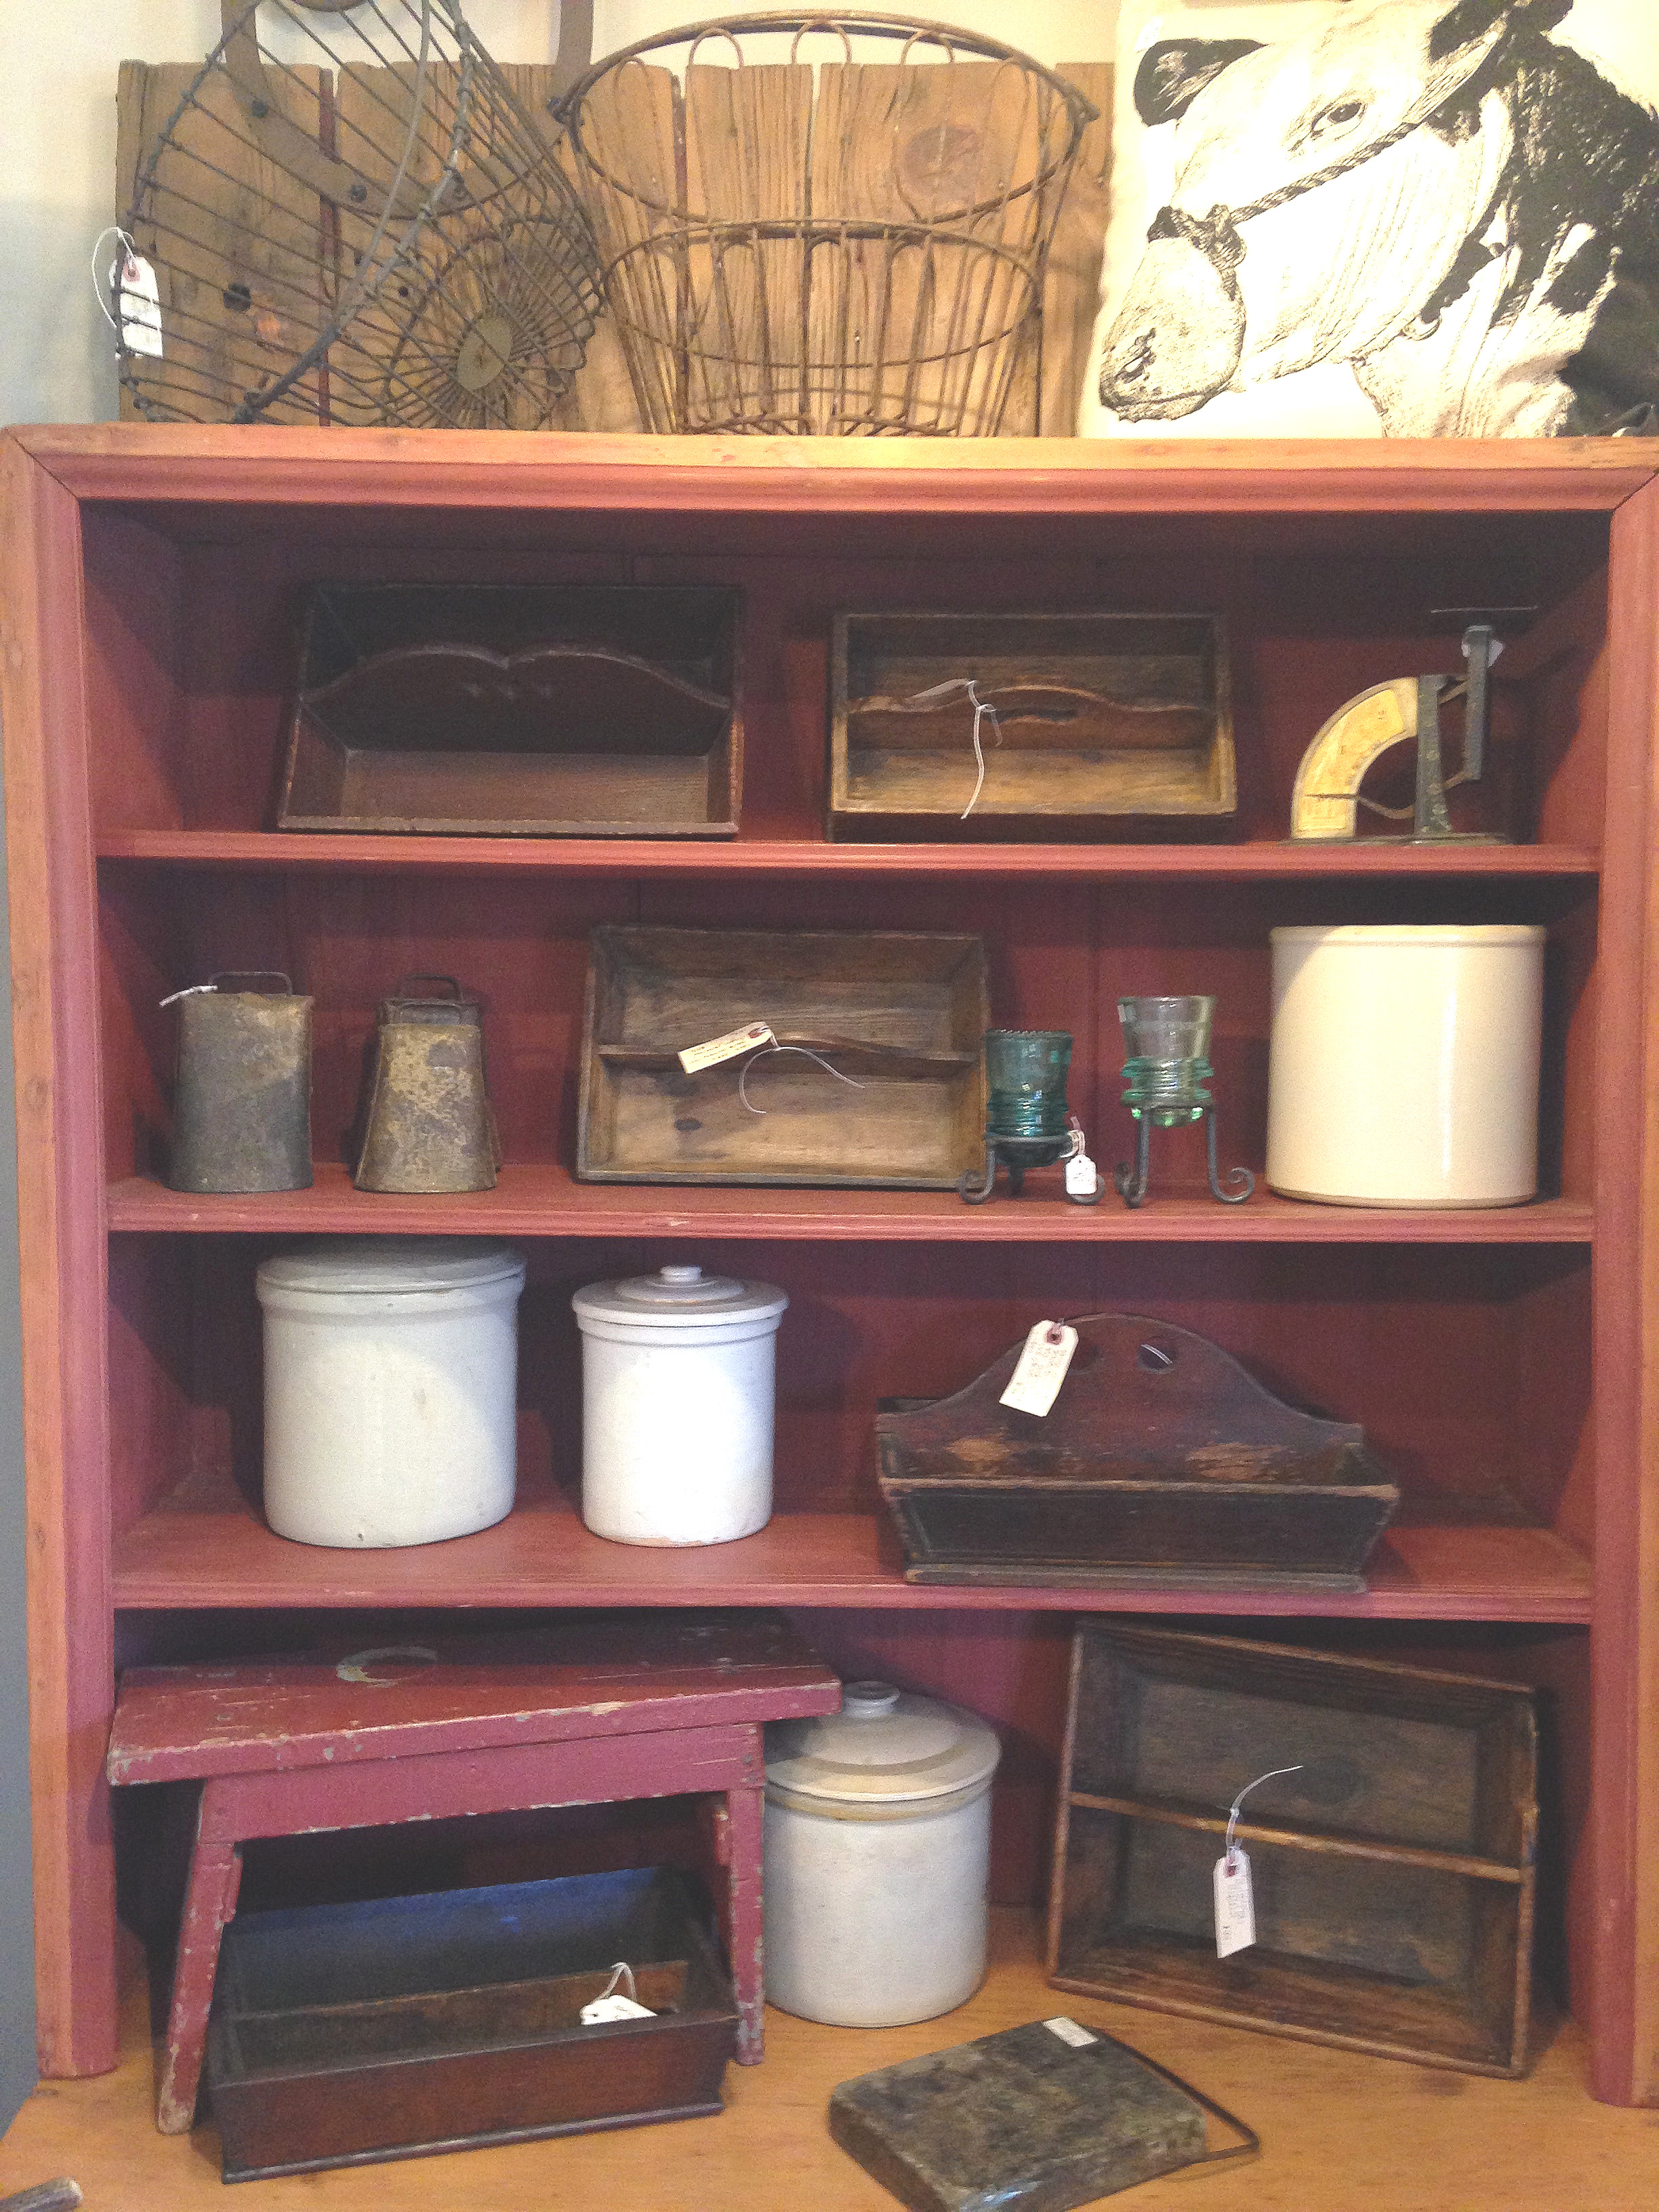 An assortment of antique knife/cutlery trays, stoneware crocks, cow bells, egg graders, and wire baskets round out this classic country display.